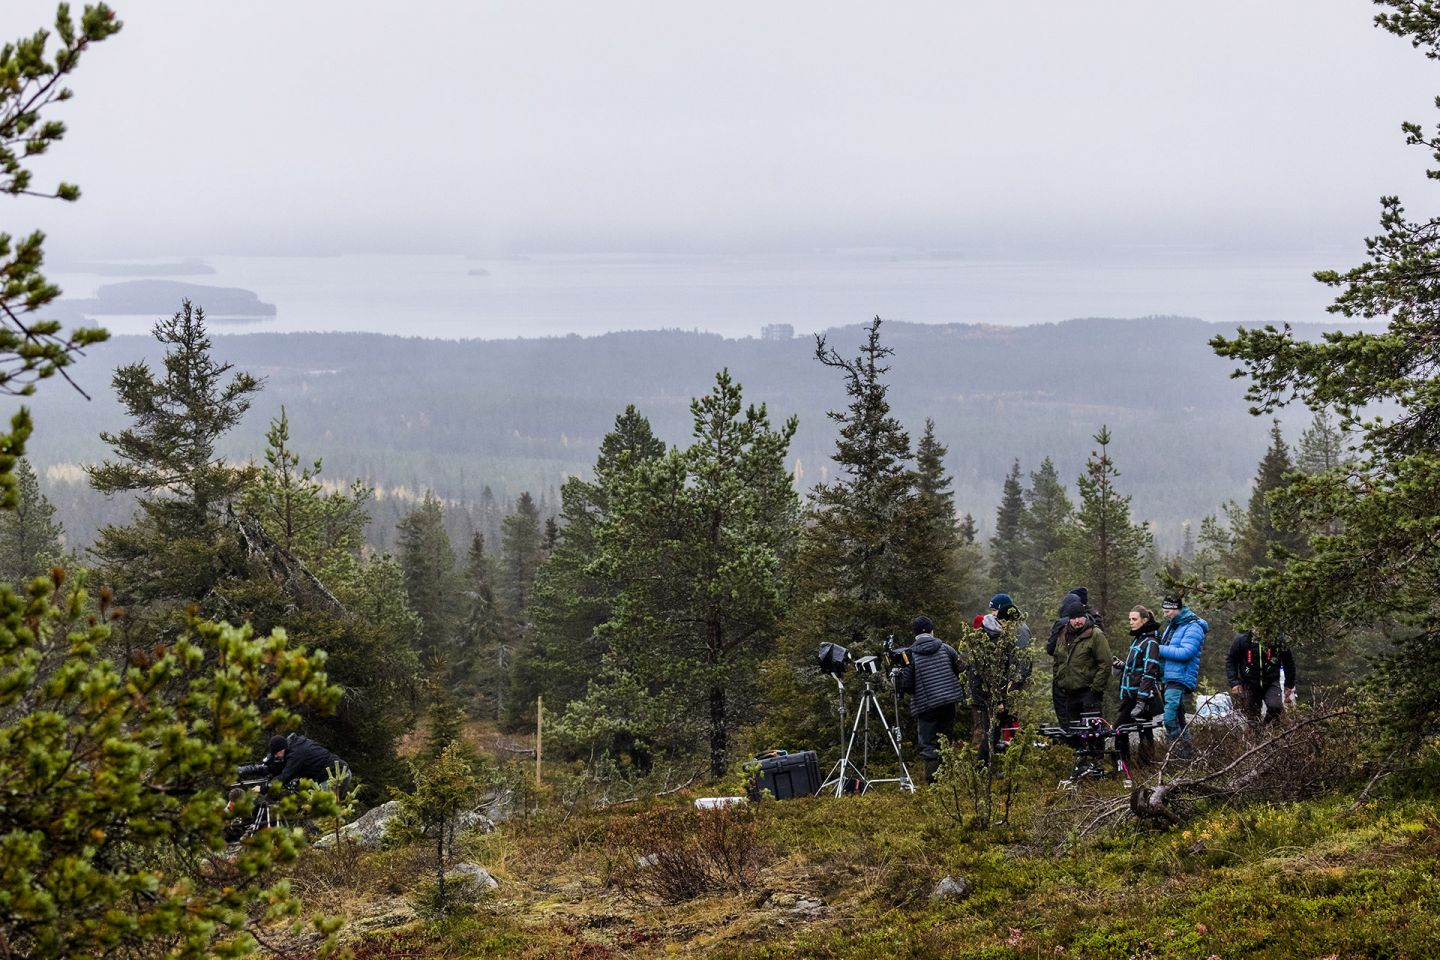 A Reindeer's Journey crew in Lapland wilderness